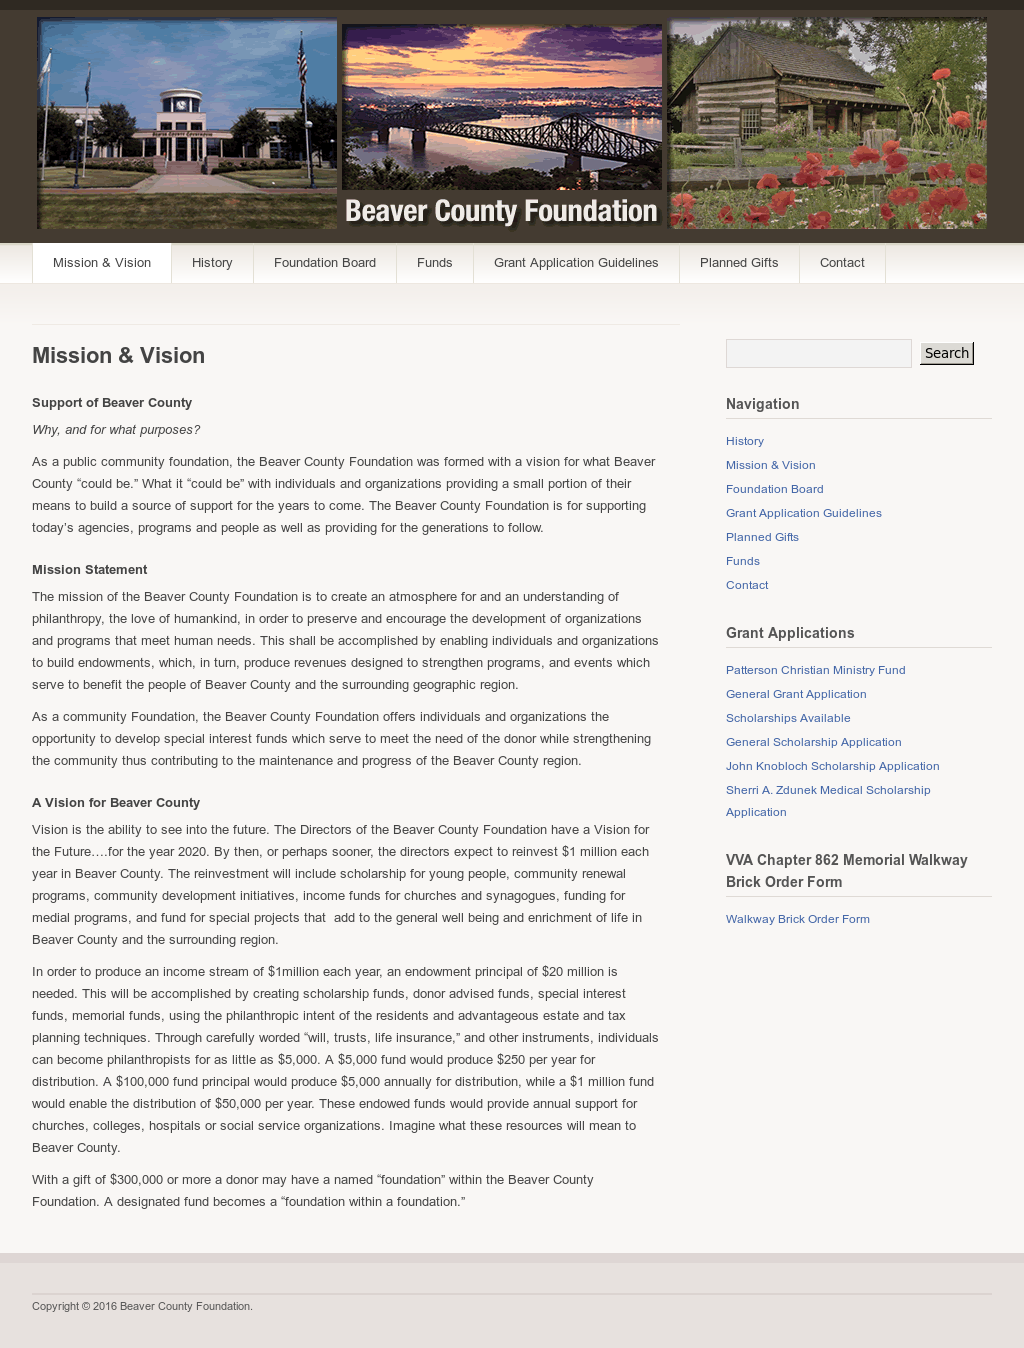 Beaver County Foundation Competitors, Revenue and Employees